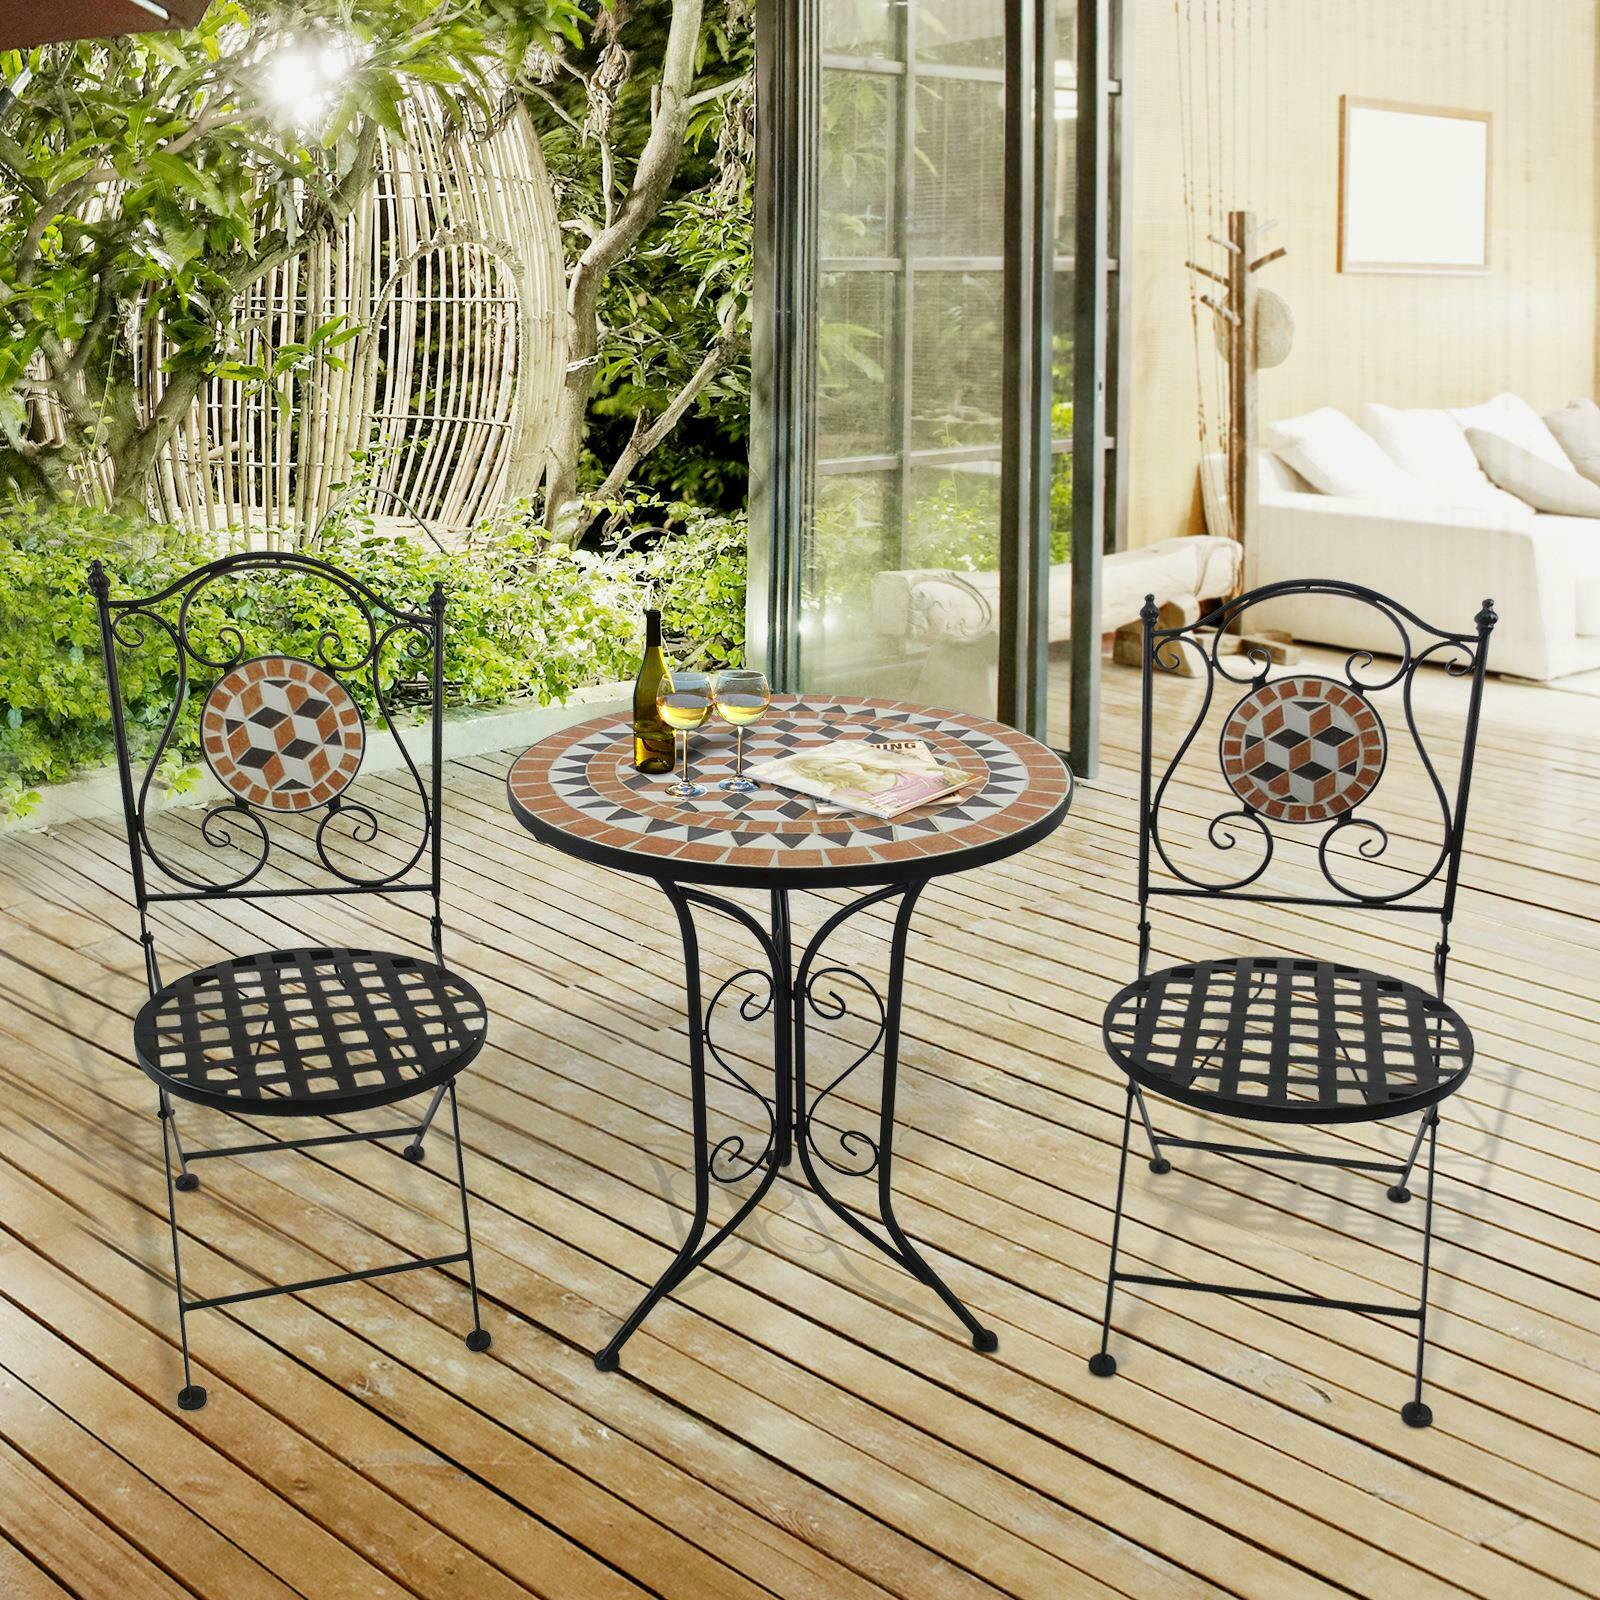 2 seat mosaic stylish garden outdoor bistro patio set table chairs furniture new buy syrian mosaic furniture hexagon patio furniture product on